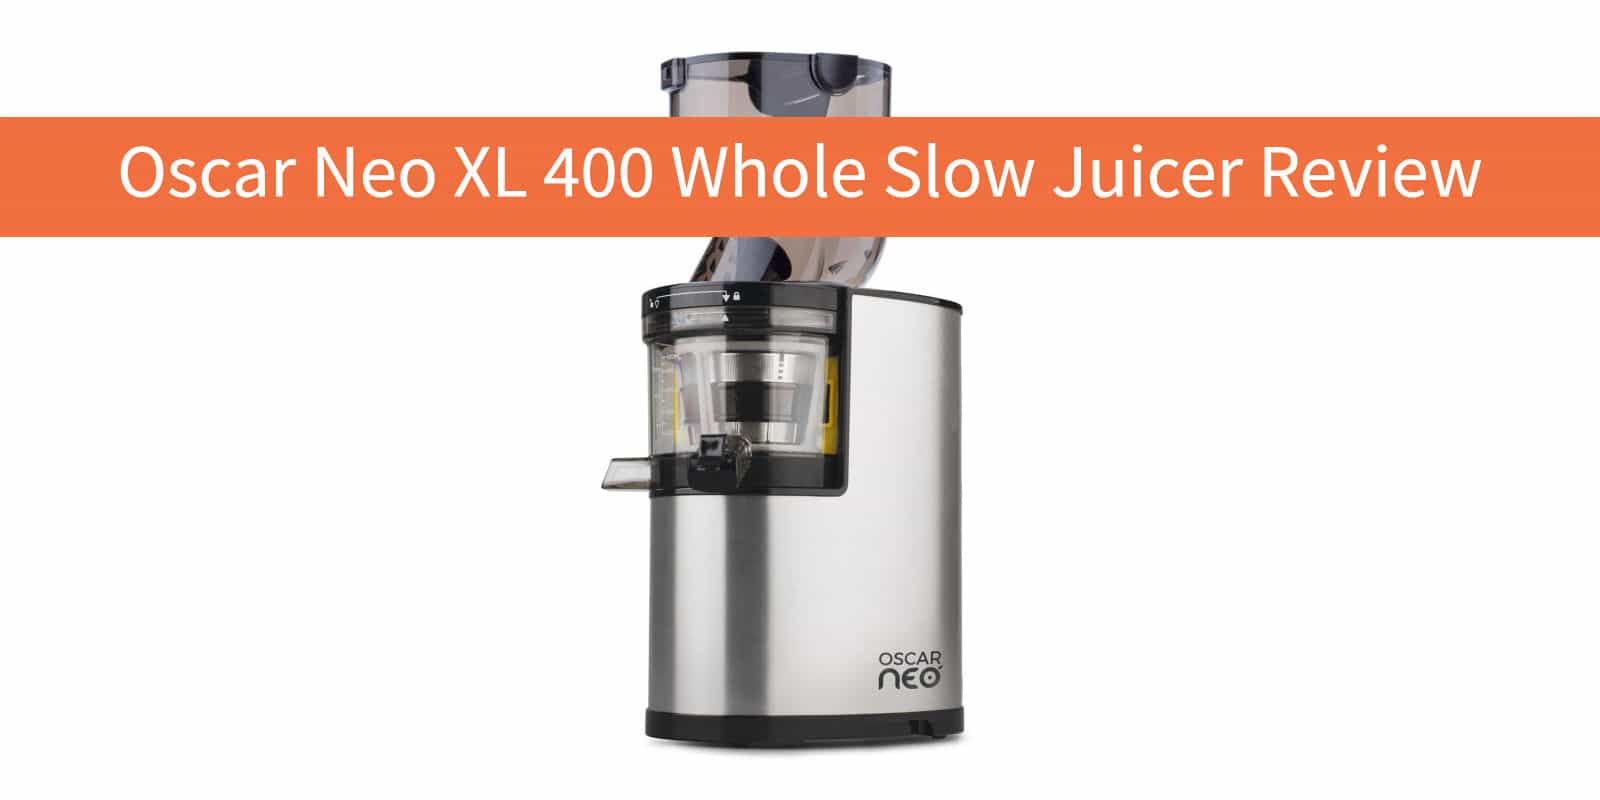 Whole Slow Juicer Review : Oscar Neo XL 400 Whole Slow Juicer Review vegByte